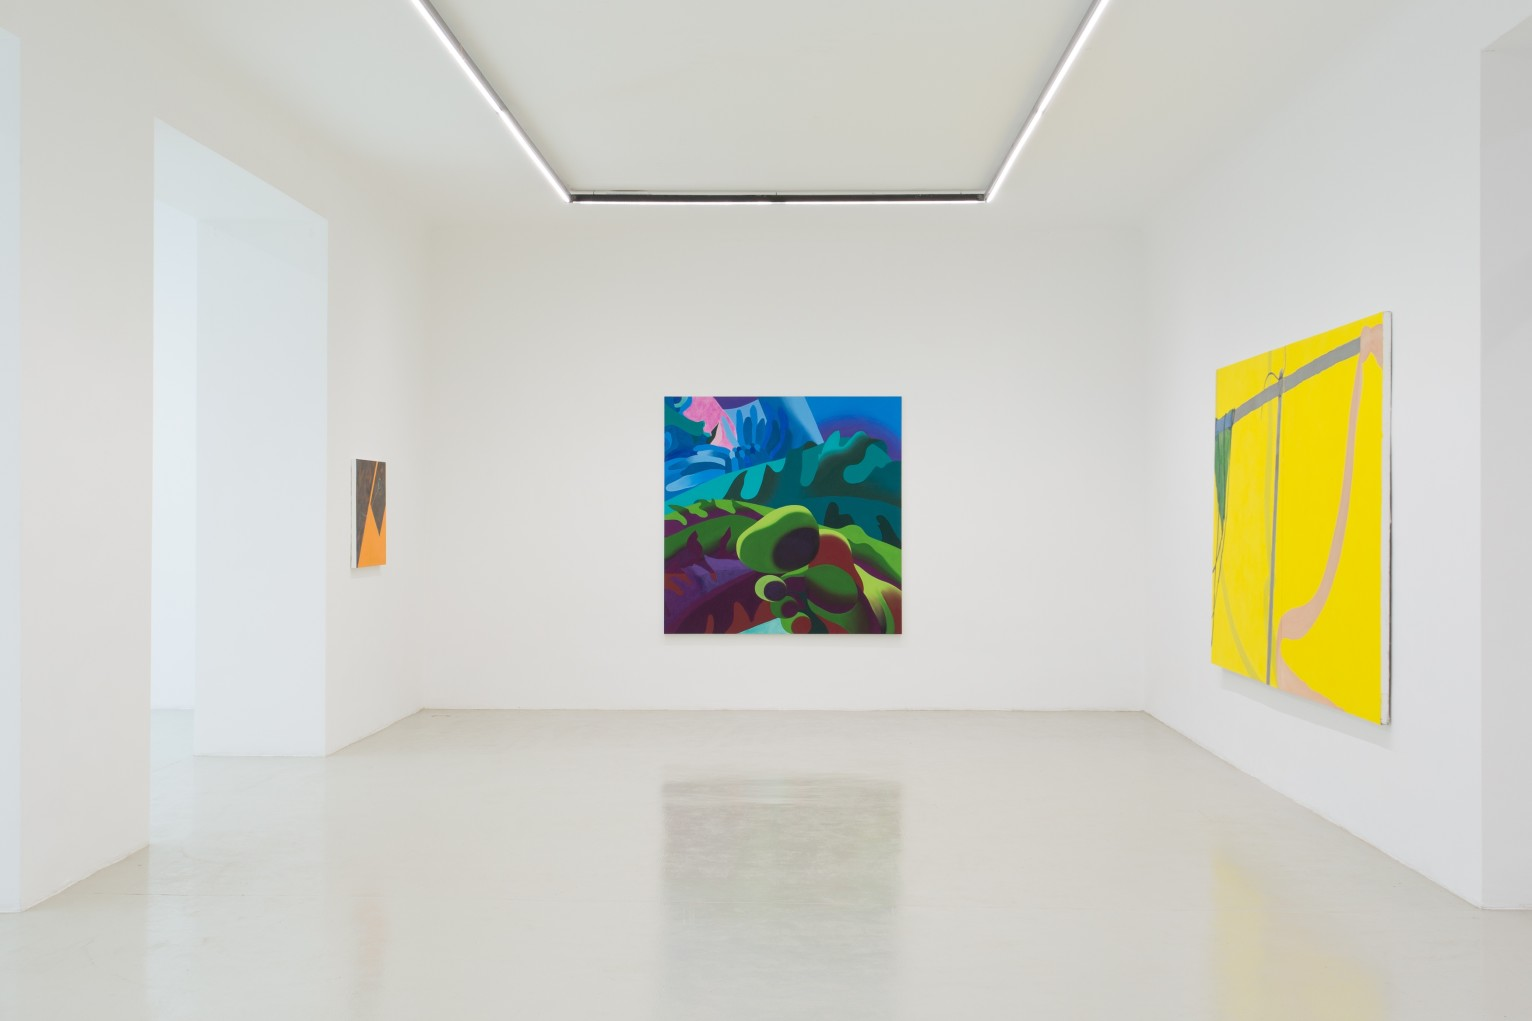 Delphine Hennelly   Kathryn Kerr   Leigh Ruple   Nathalie Shepherd   Faye Wei Wei The Picture Is A Forest 24 May - 29 June 2019